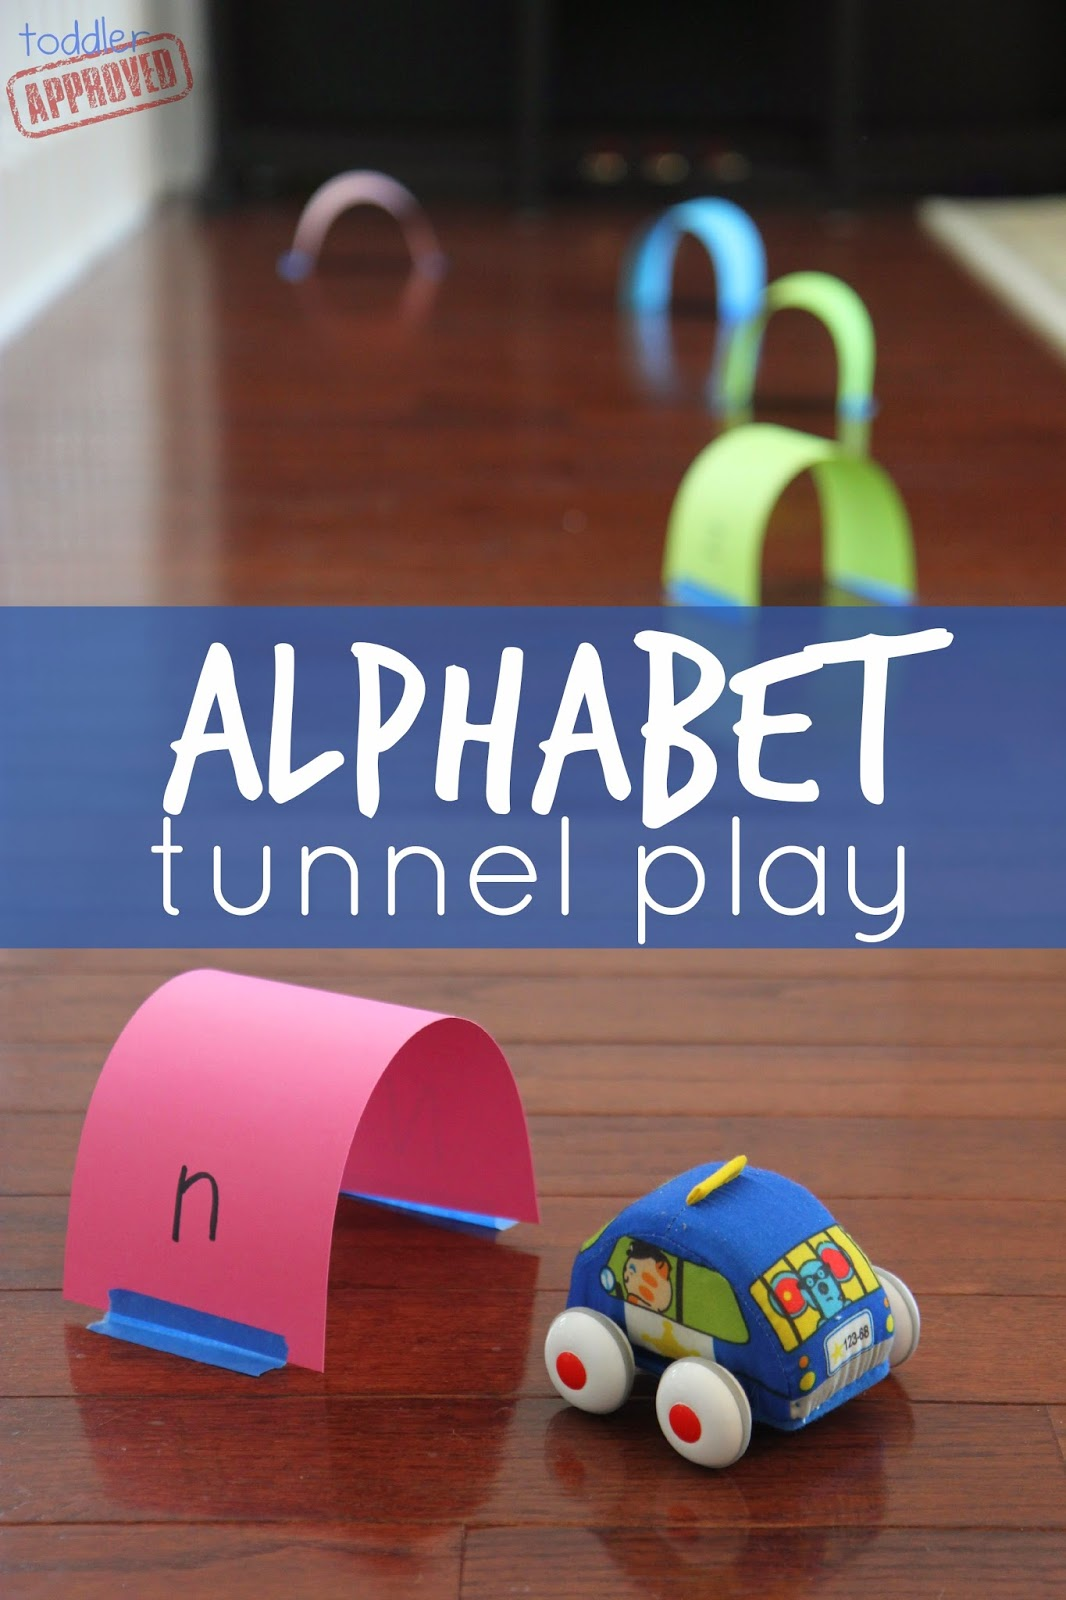 Toddler Approved Alphabet Tunnel Play Amp Learning